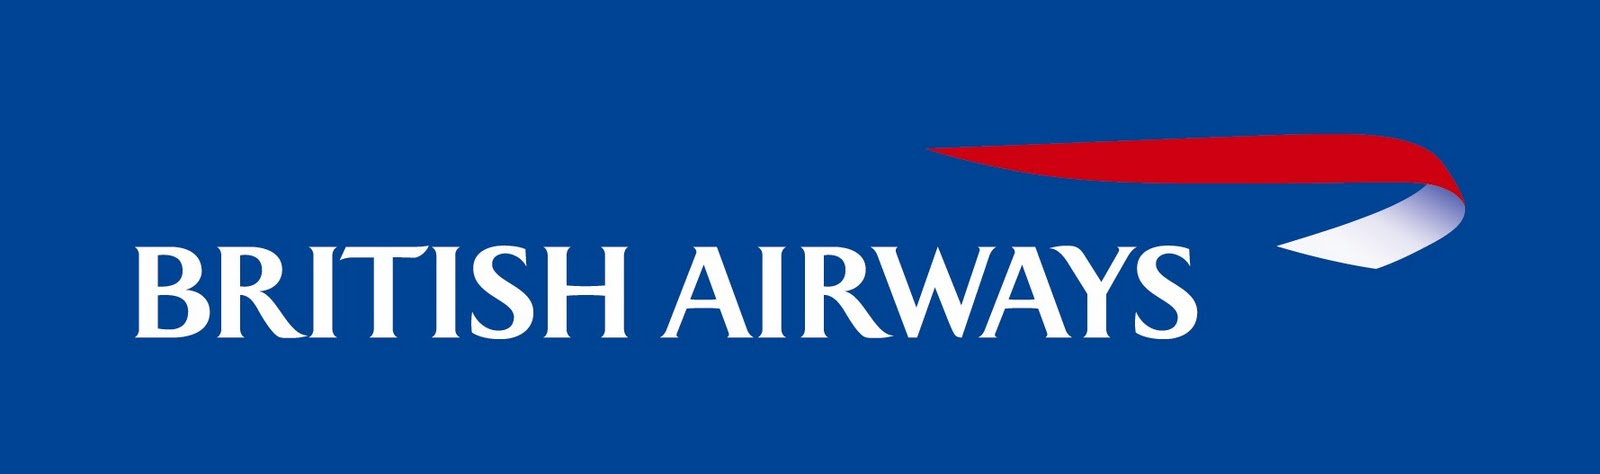 Travel Icons png download - 2400*2400 - Free Transparent British Airways  png Download. - CleanPNG / KissPNG